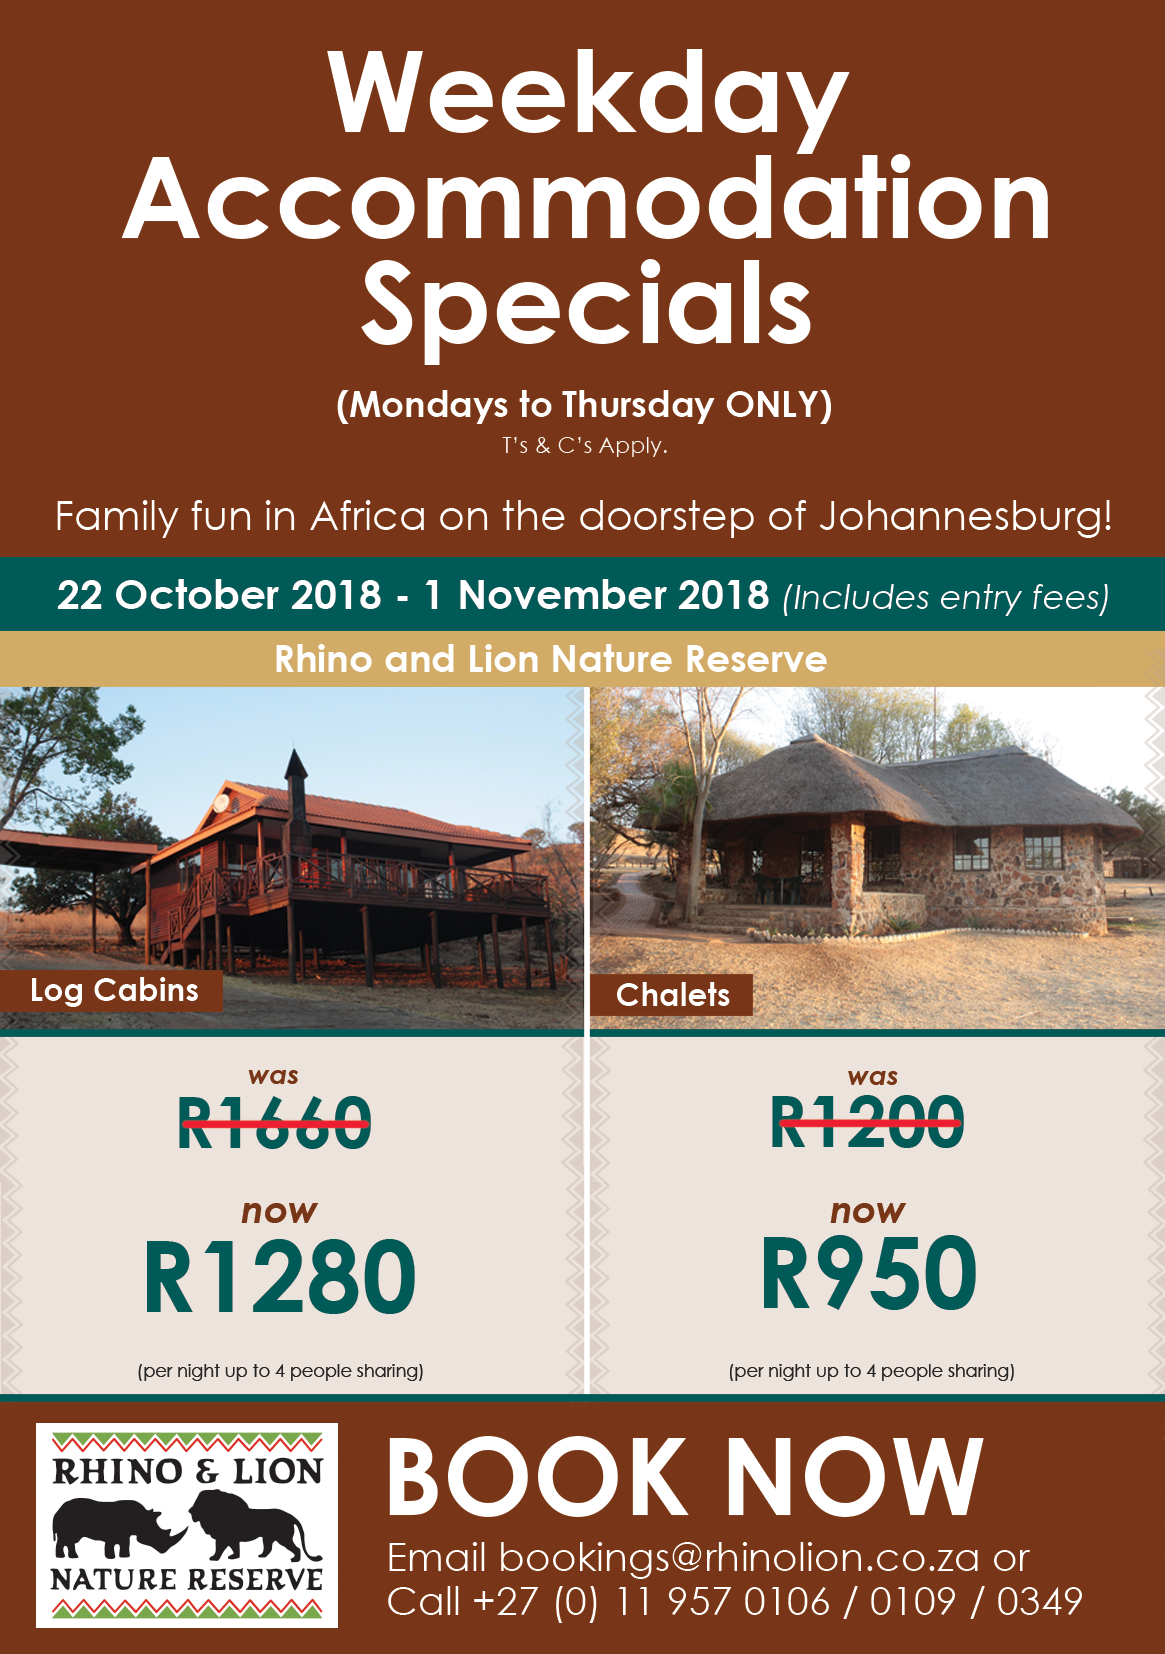 Weekday Accommodation Specials